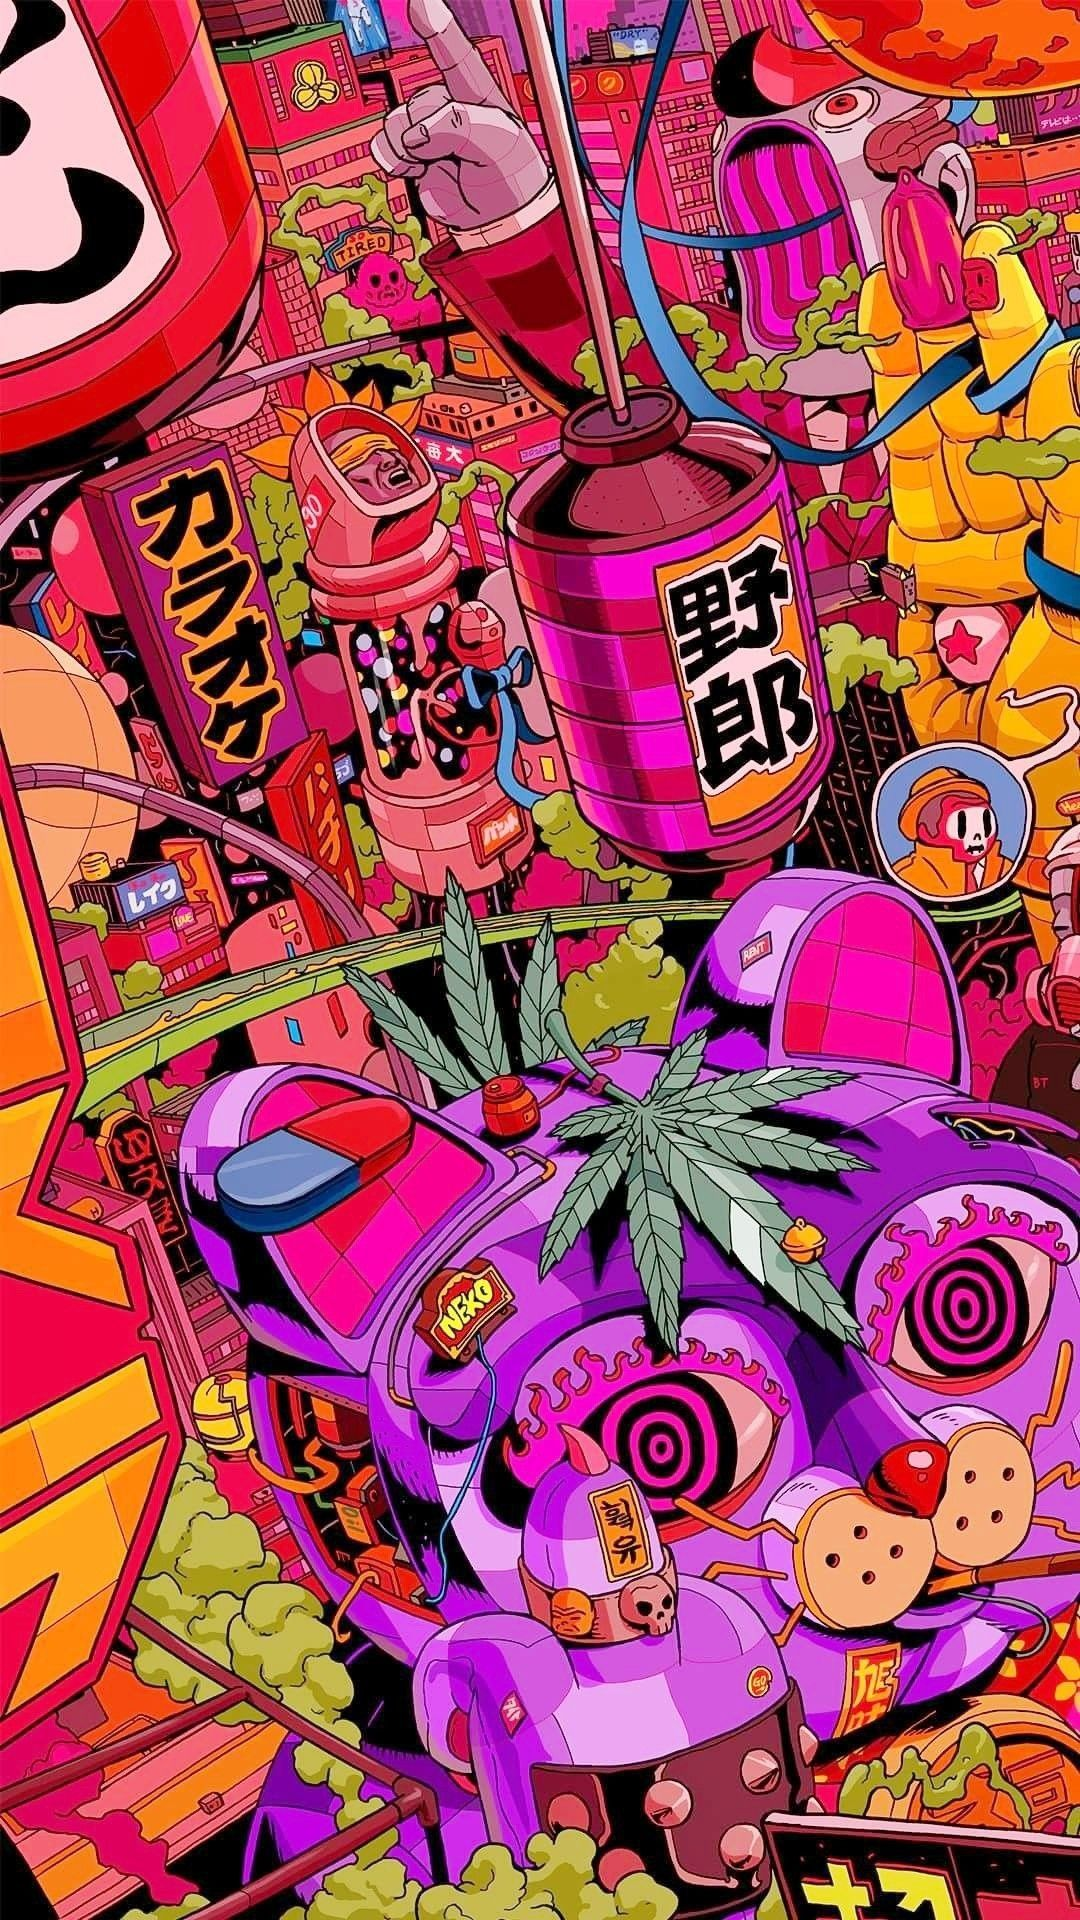 Stoner Trippy Wallpaper Android Download Design Wallpapers Ideas